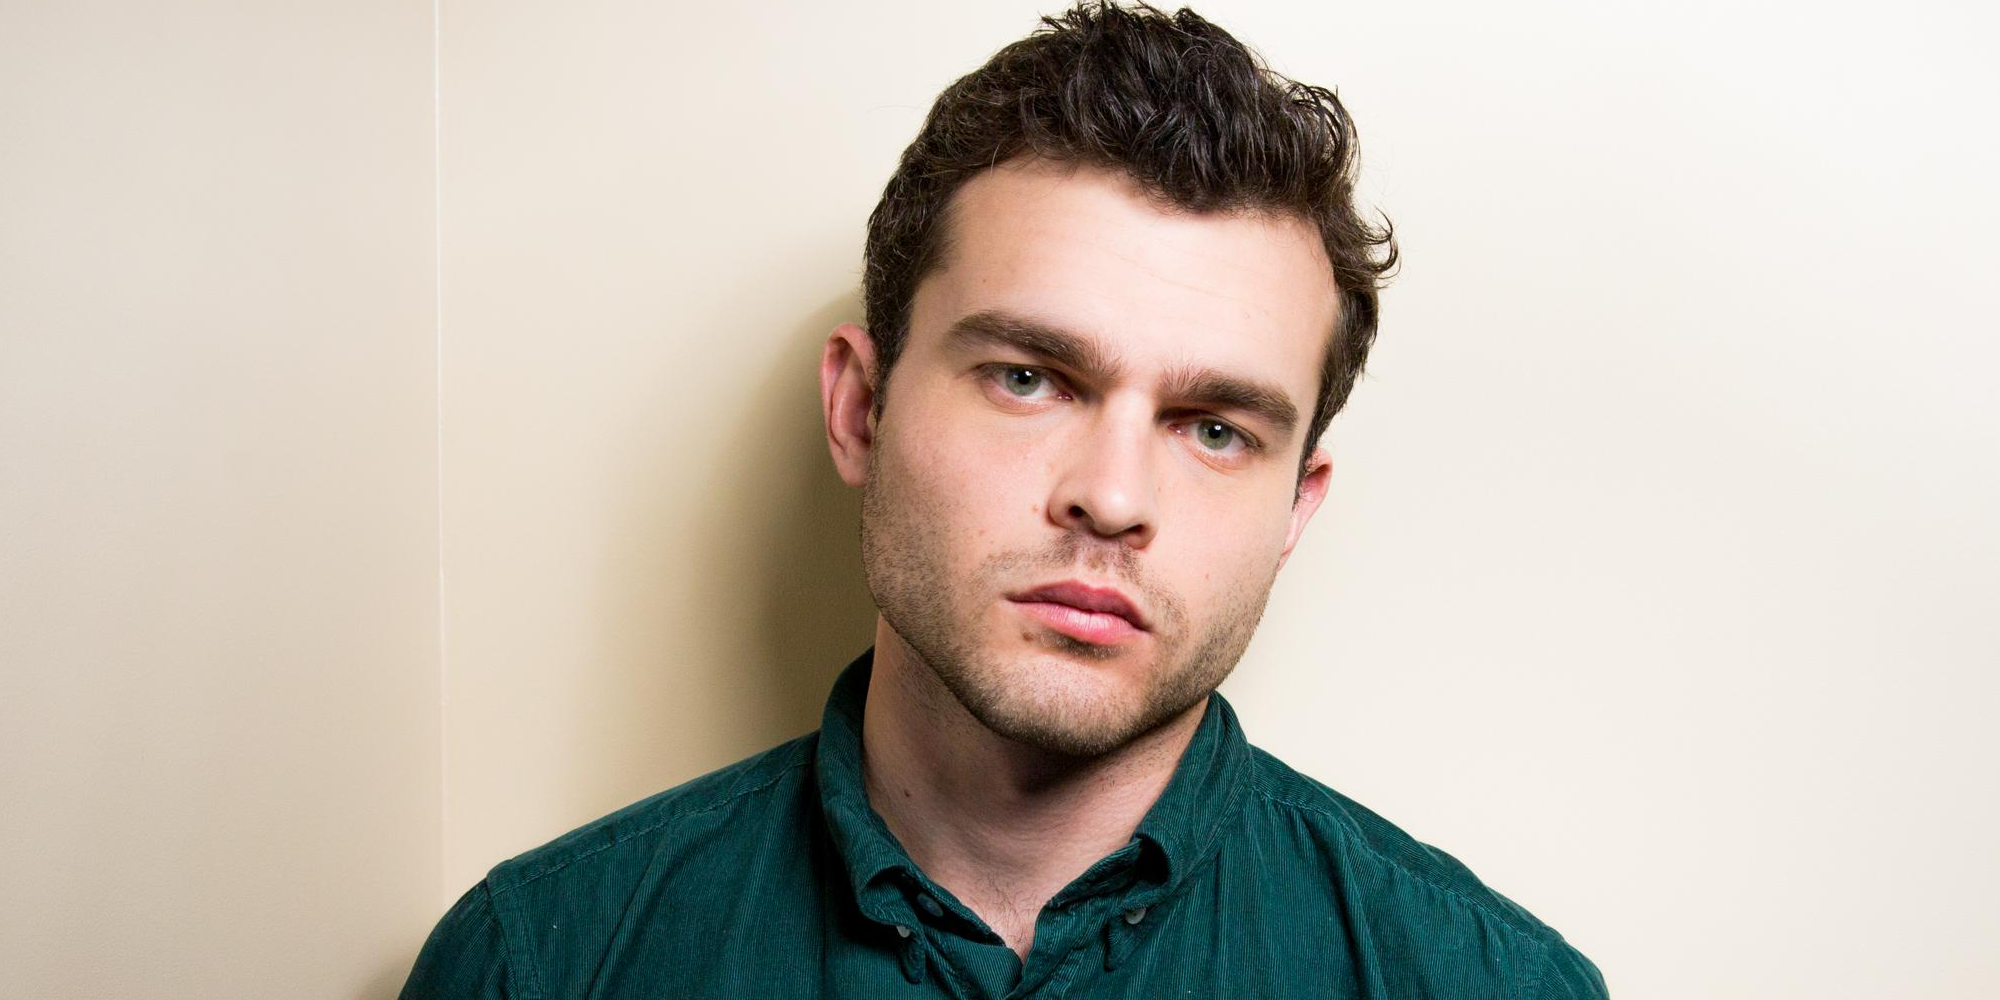 Alden Ehrenreich Is The Frontrunner To Play Han Solo In